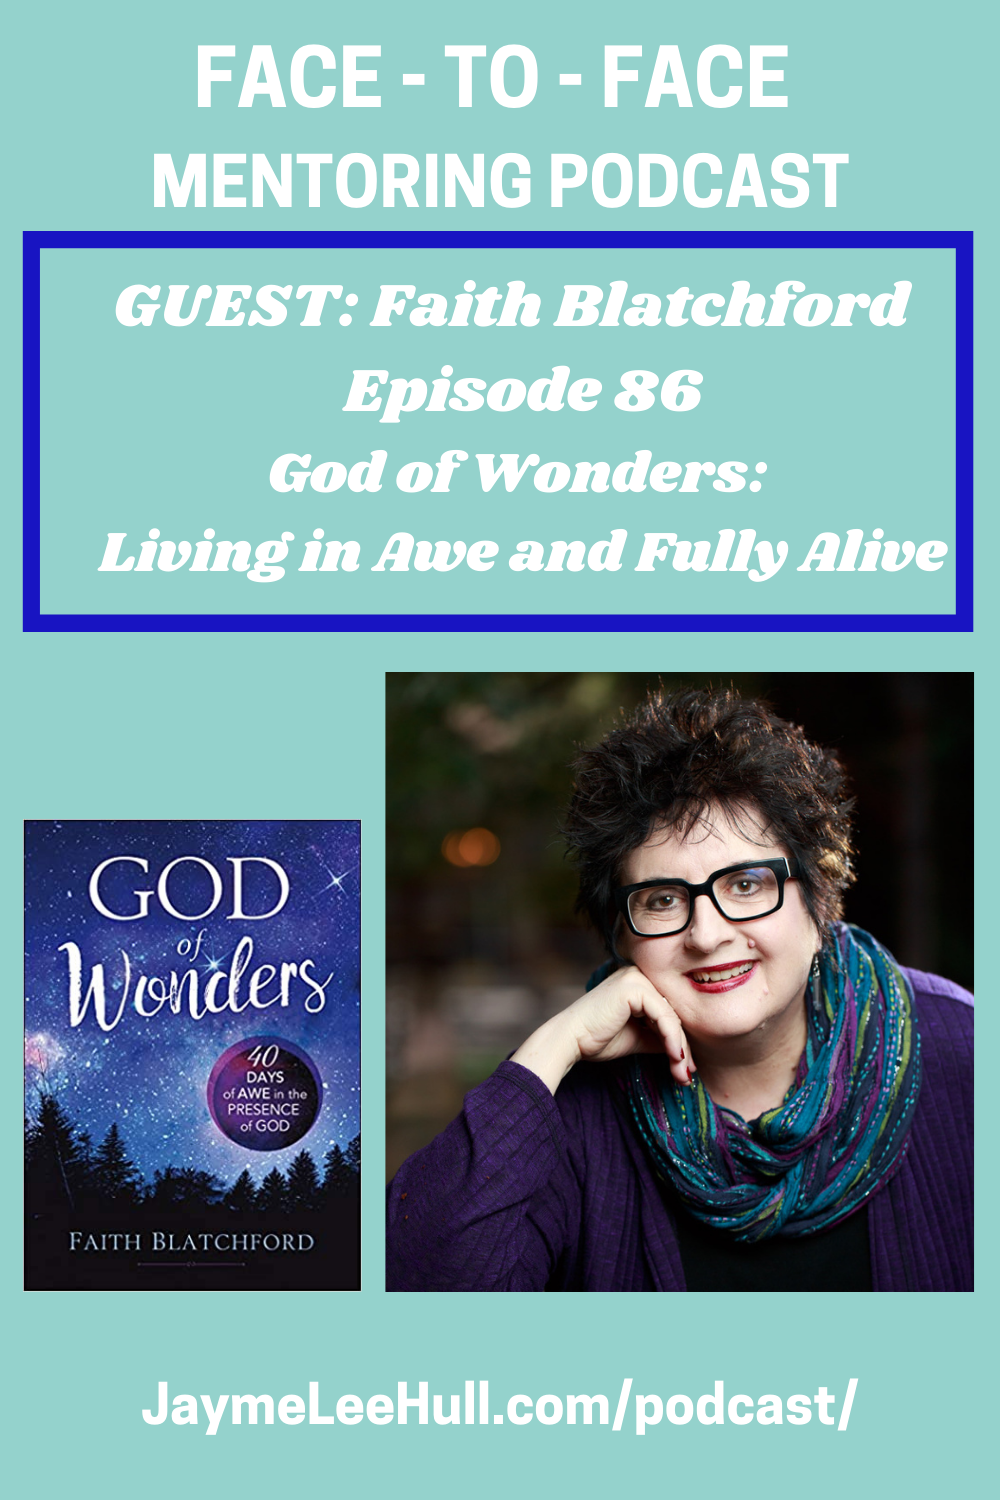 Have you been walking through discouragement, disillusionment or disappointment? You are not alone my friend. God is able to fill the emptiness you feel with His marvelous presence. Today's Face to Face Mentoring Podcast episode focuses on the AWE of God: Living in Awe and Fully alive with my special guest and author, Faith Blatchford.